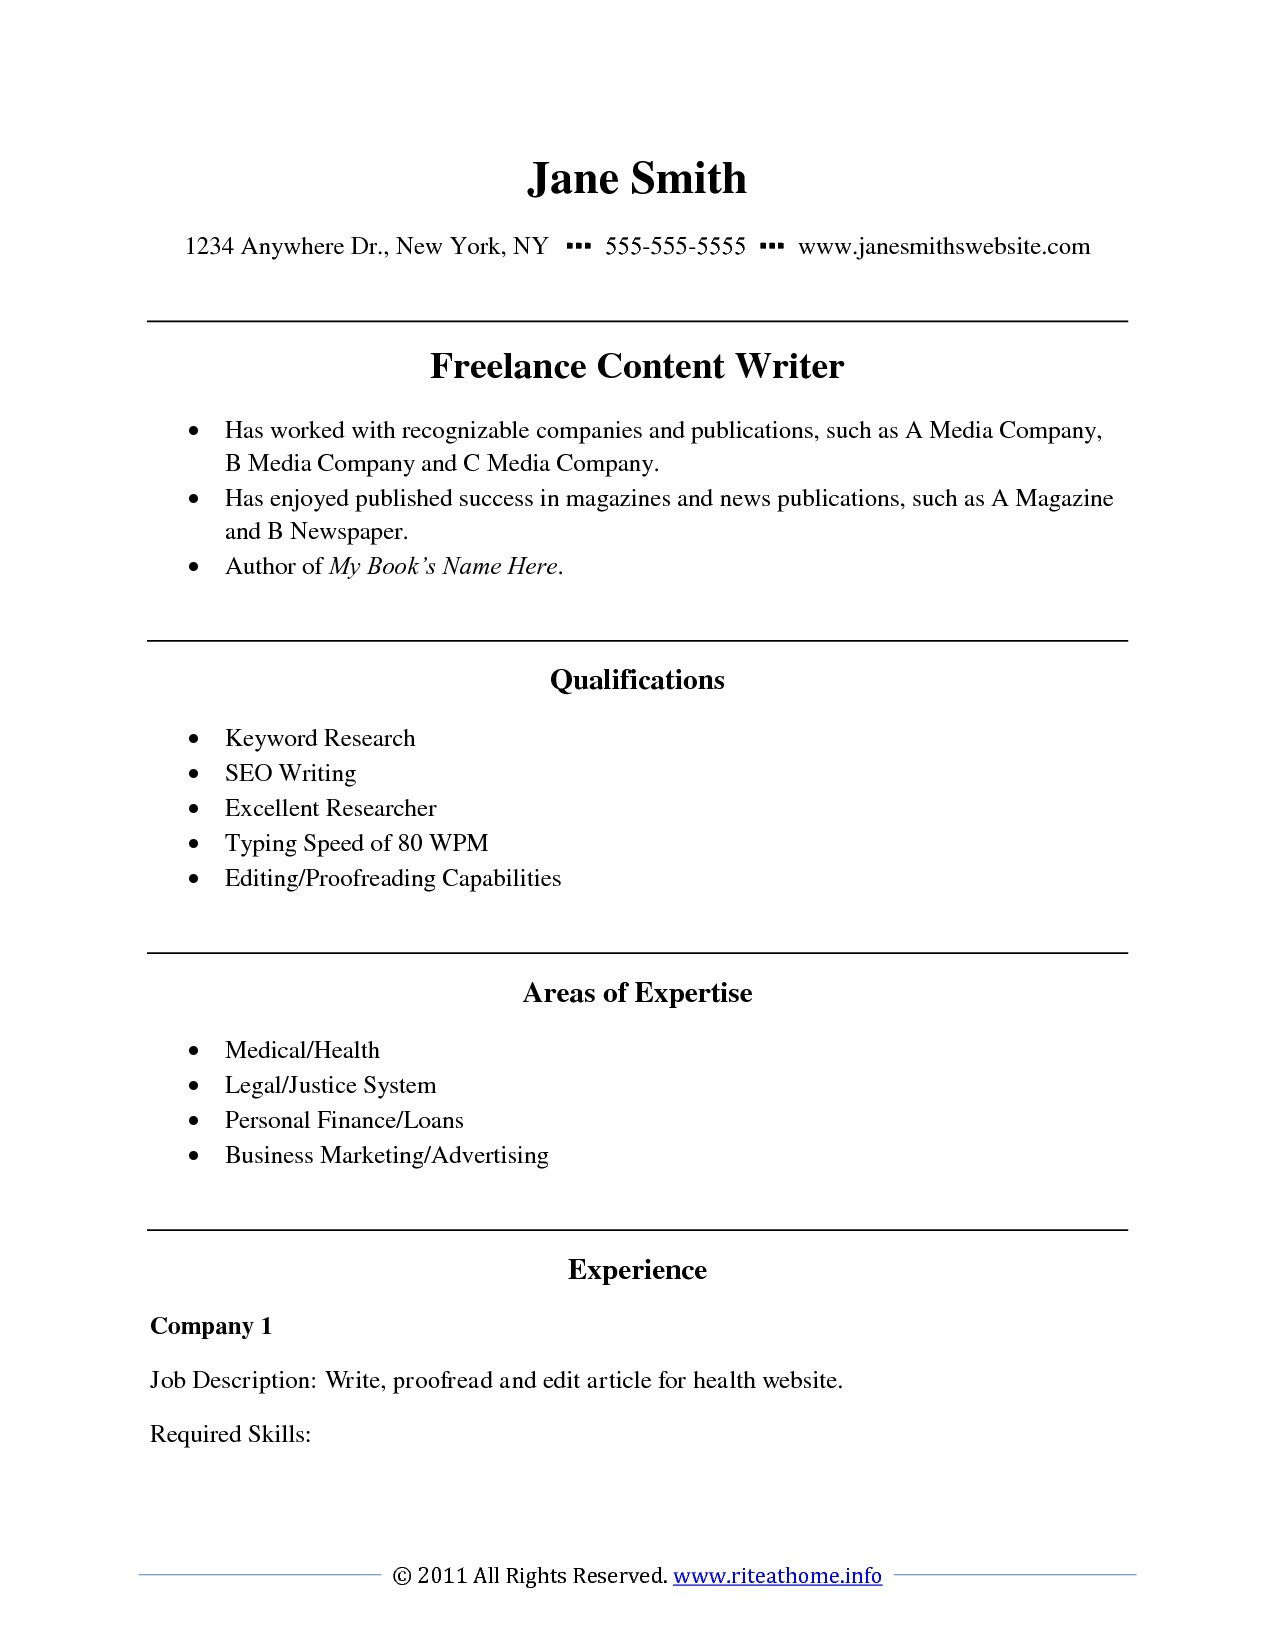 Help Making A Resume for Free - 24 Fresh Resume Helper Free